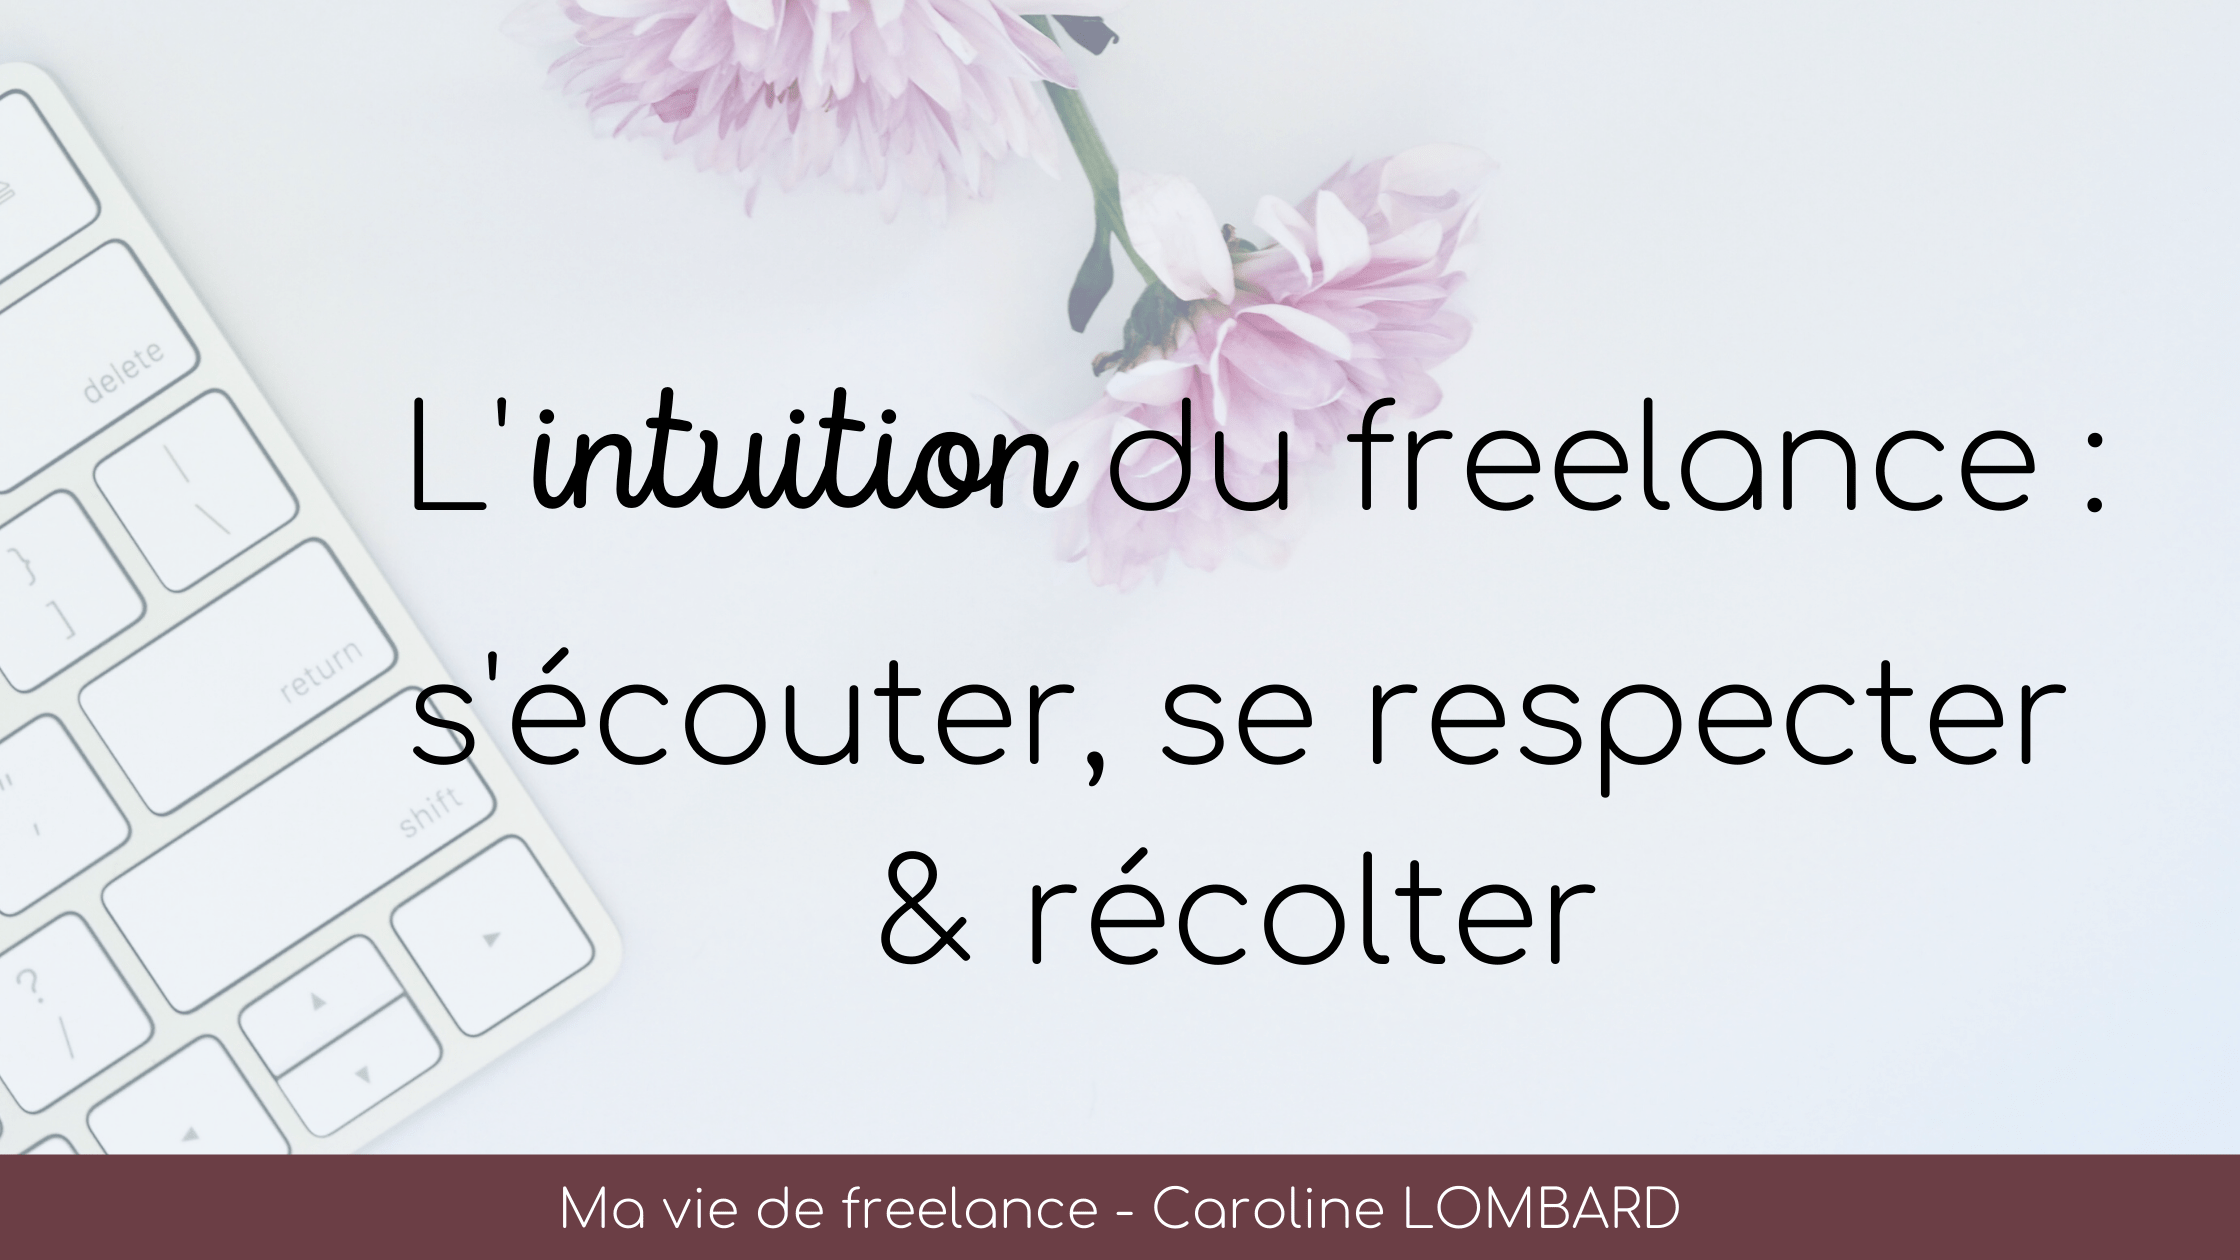 intuition-du-freelance-s'ecouter-se-respecter-recolter